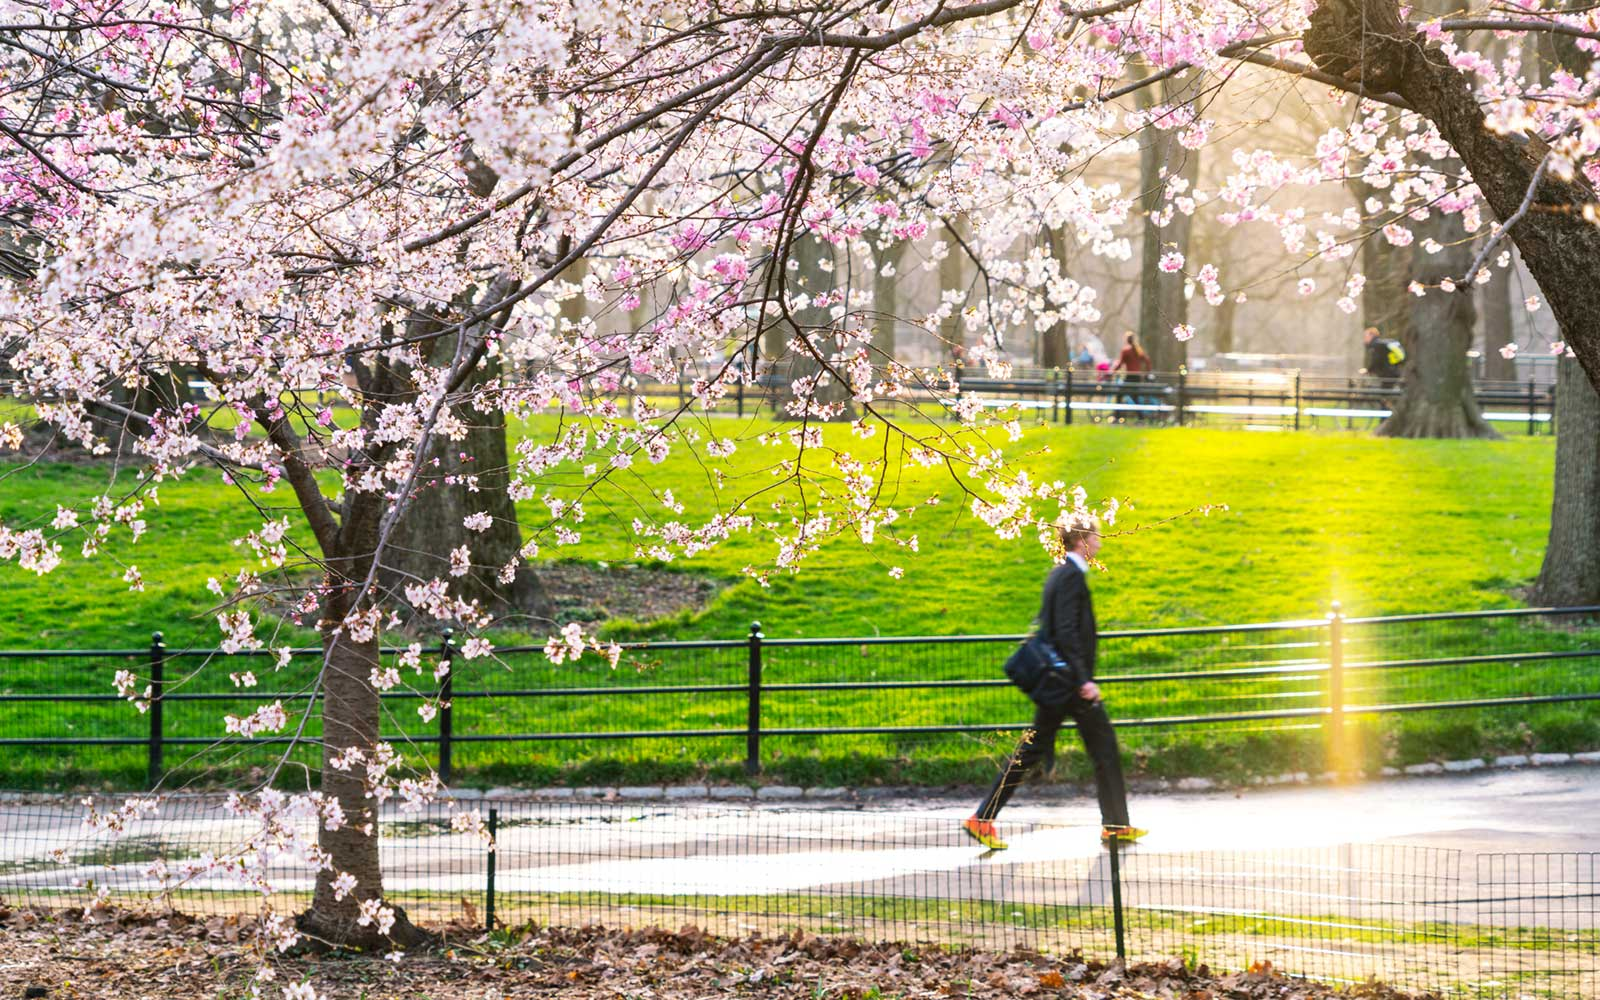 Cherry Blossoms in Central Park, New York City